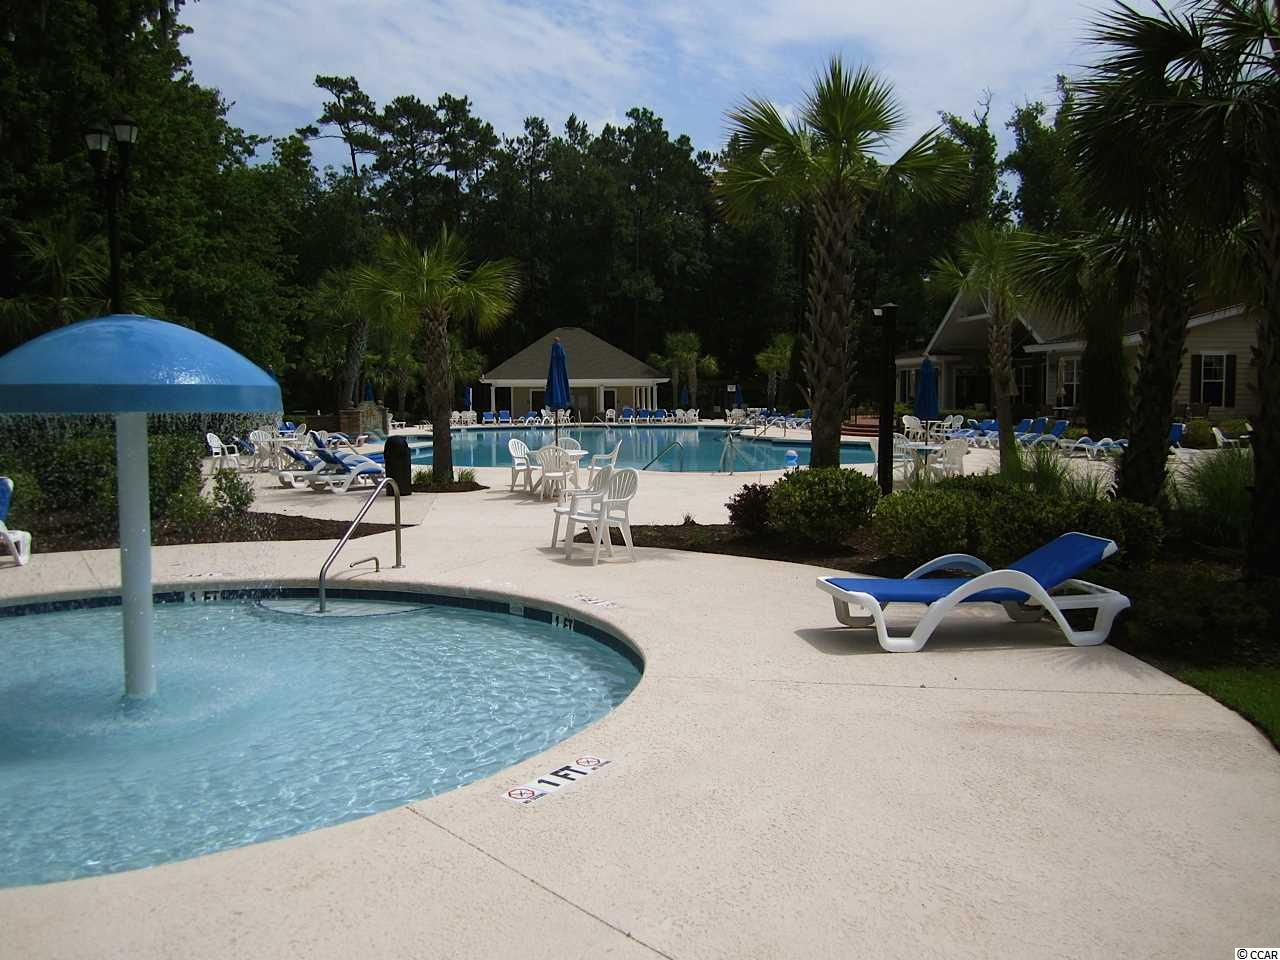 Additional photo for property listing at 468 Chamberlin Road 468 Chamberlin Road Myrtle Beach, South Carolina 29588 United States